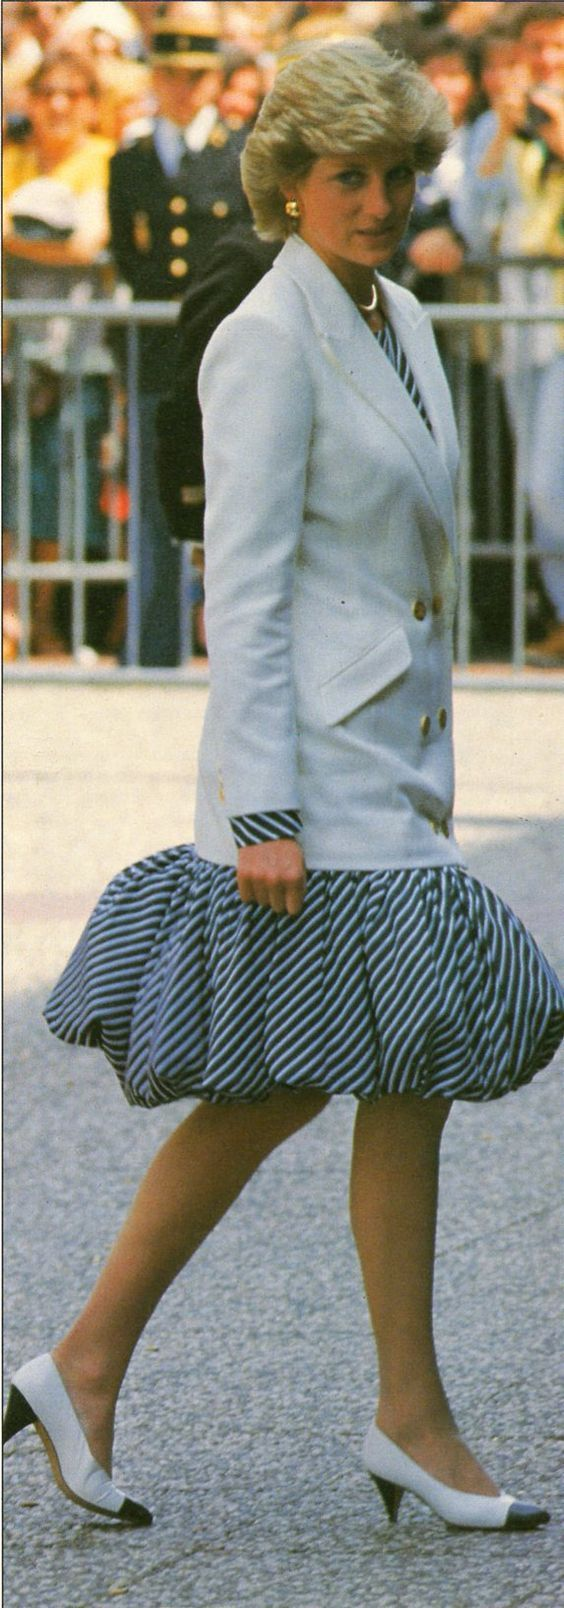 May 14/15 1987: Cannes